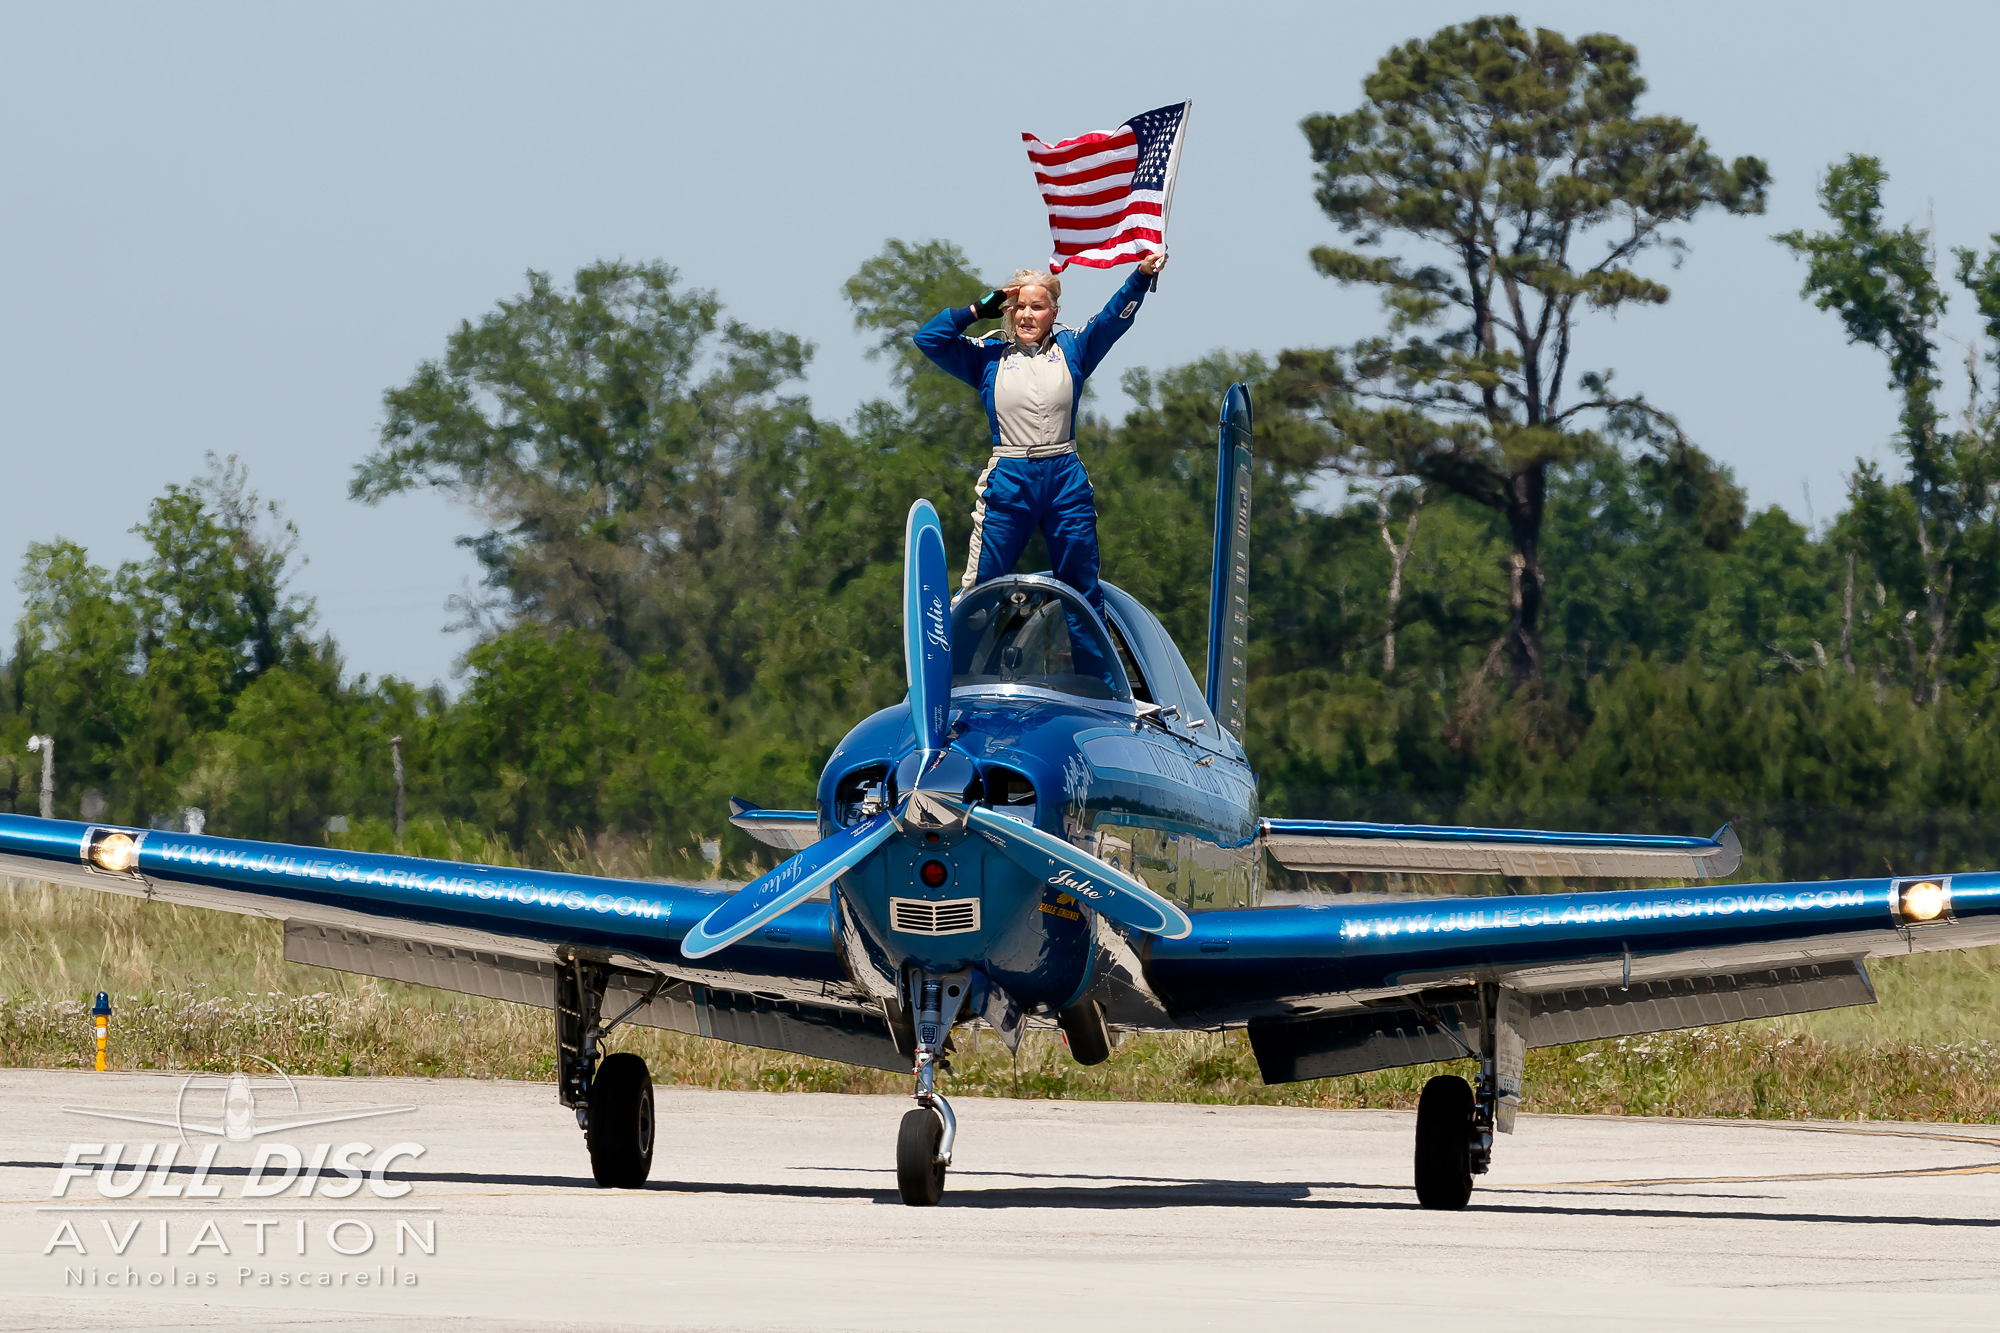 julieclark_flag_mcasbeaufort_nicholaspascarella_fulldiscavation_aviation_airshow.jpg